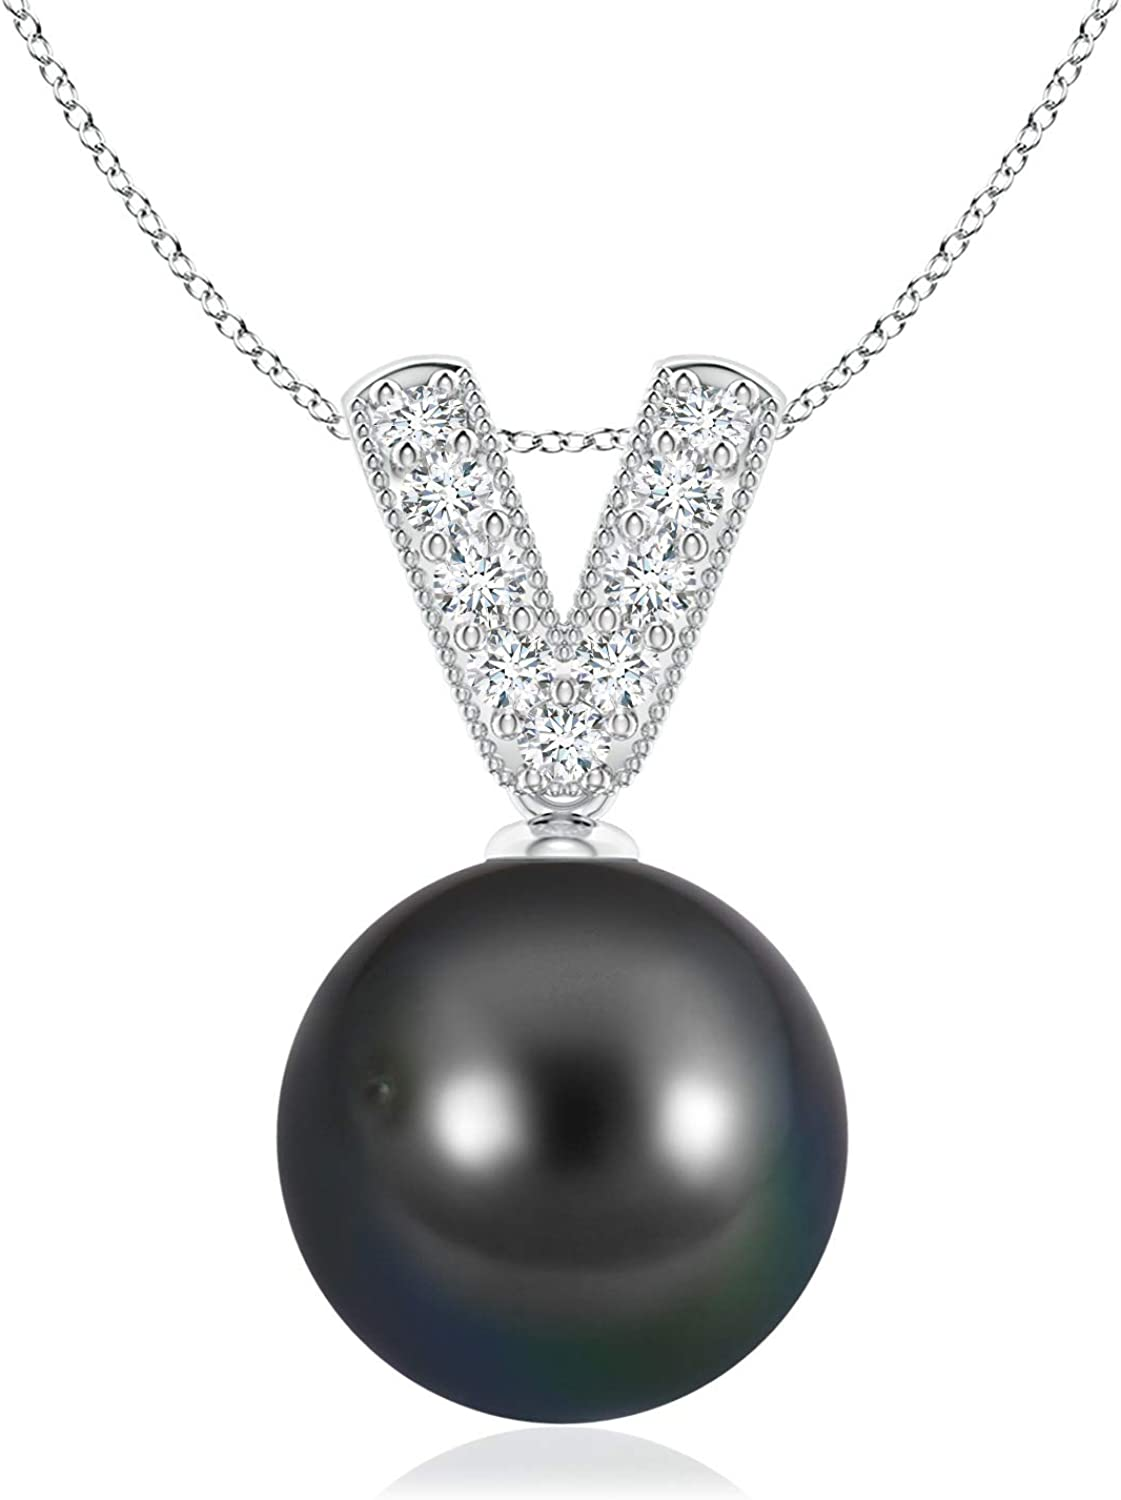 Low price Tahitian Cultured Pearl Diamond 10mm Pendant V-Bale All items in the store